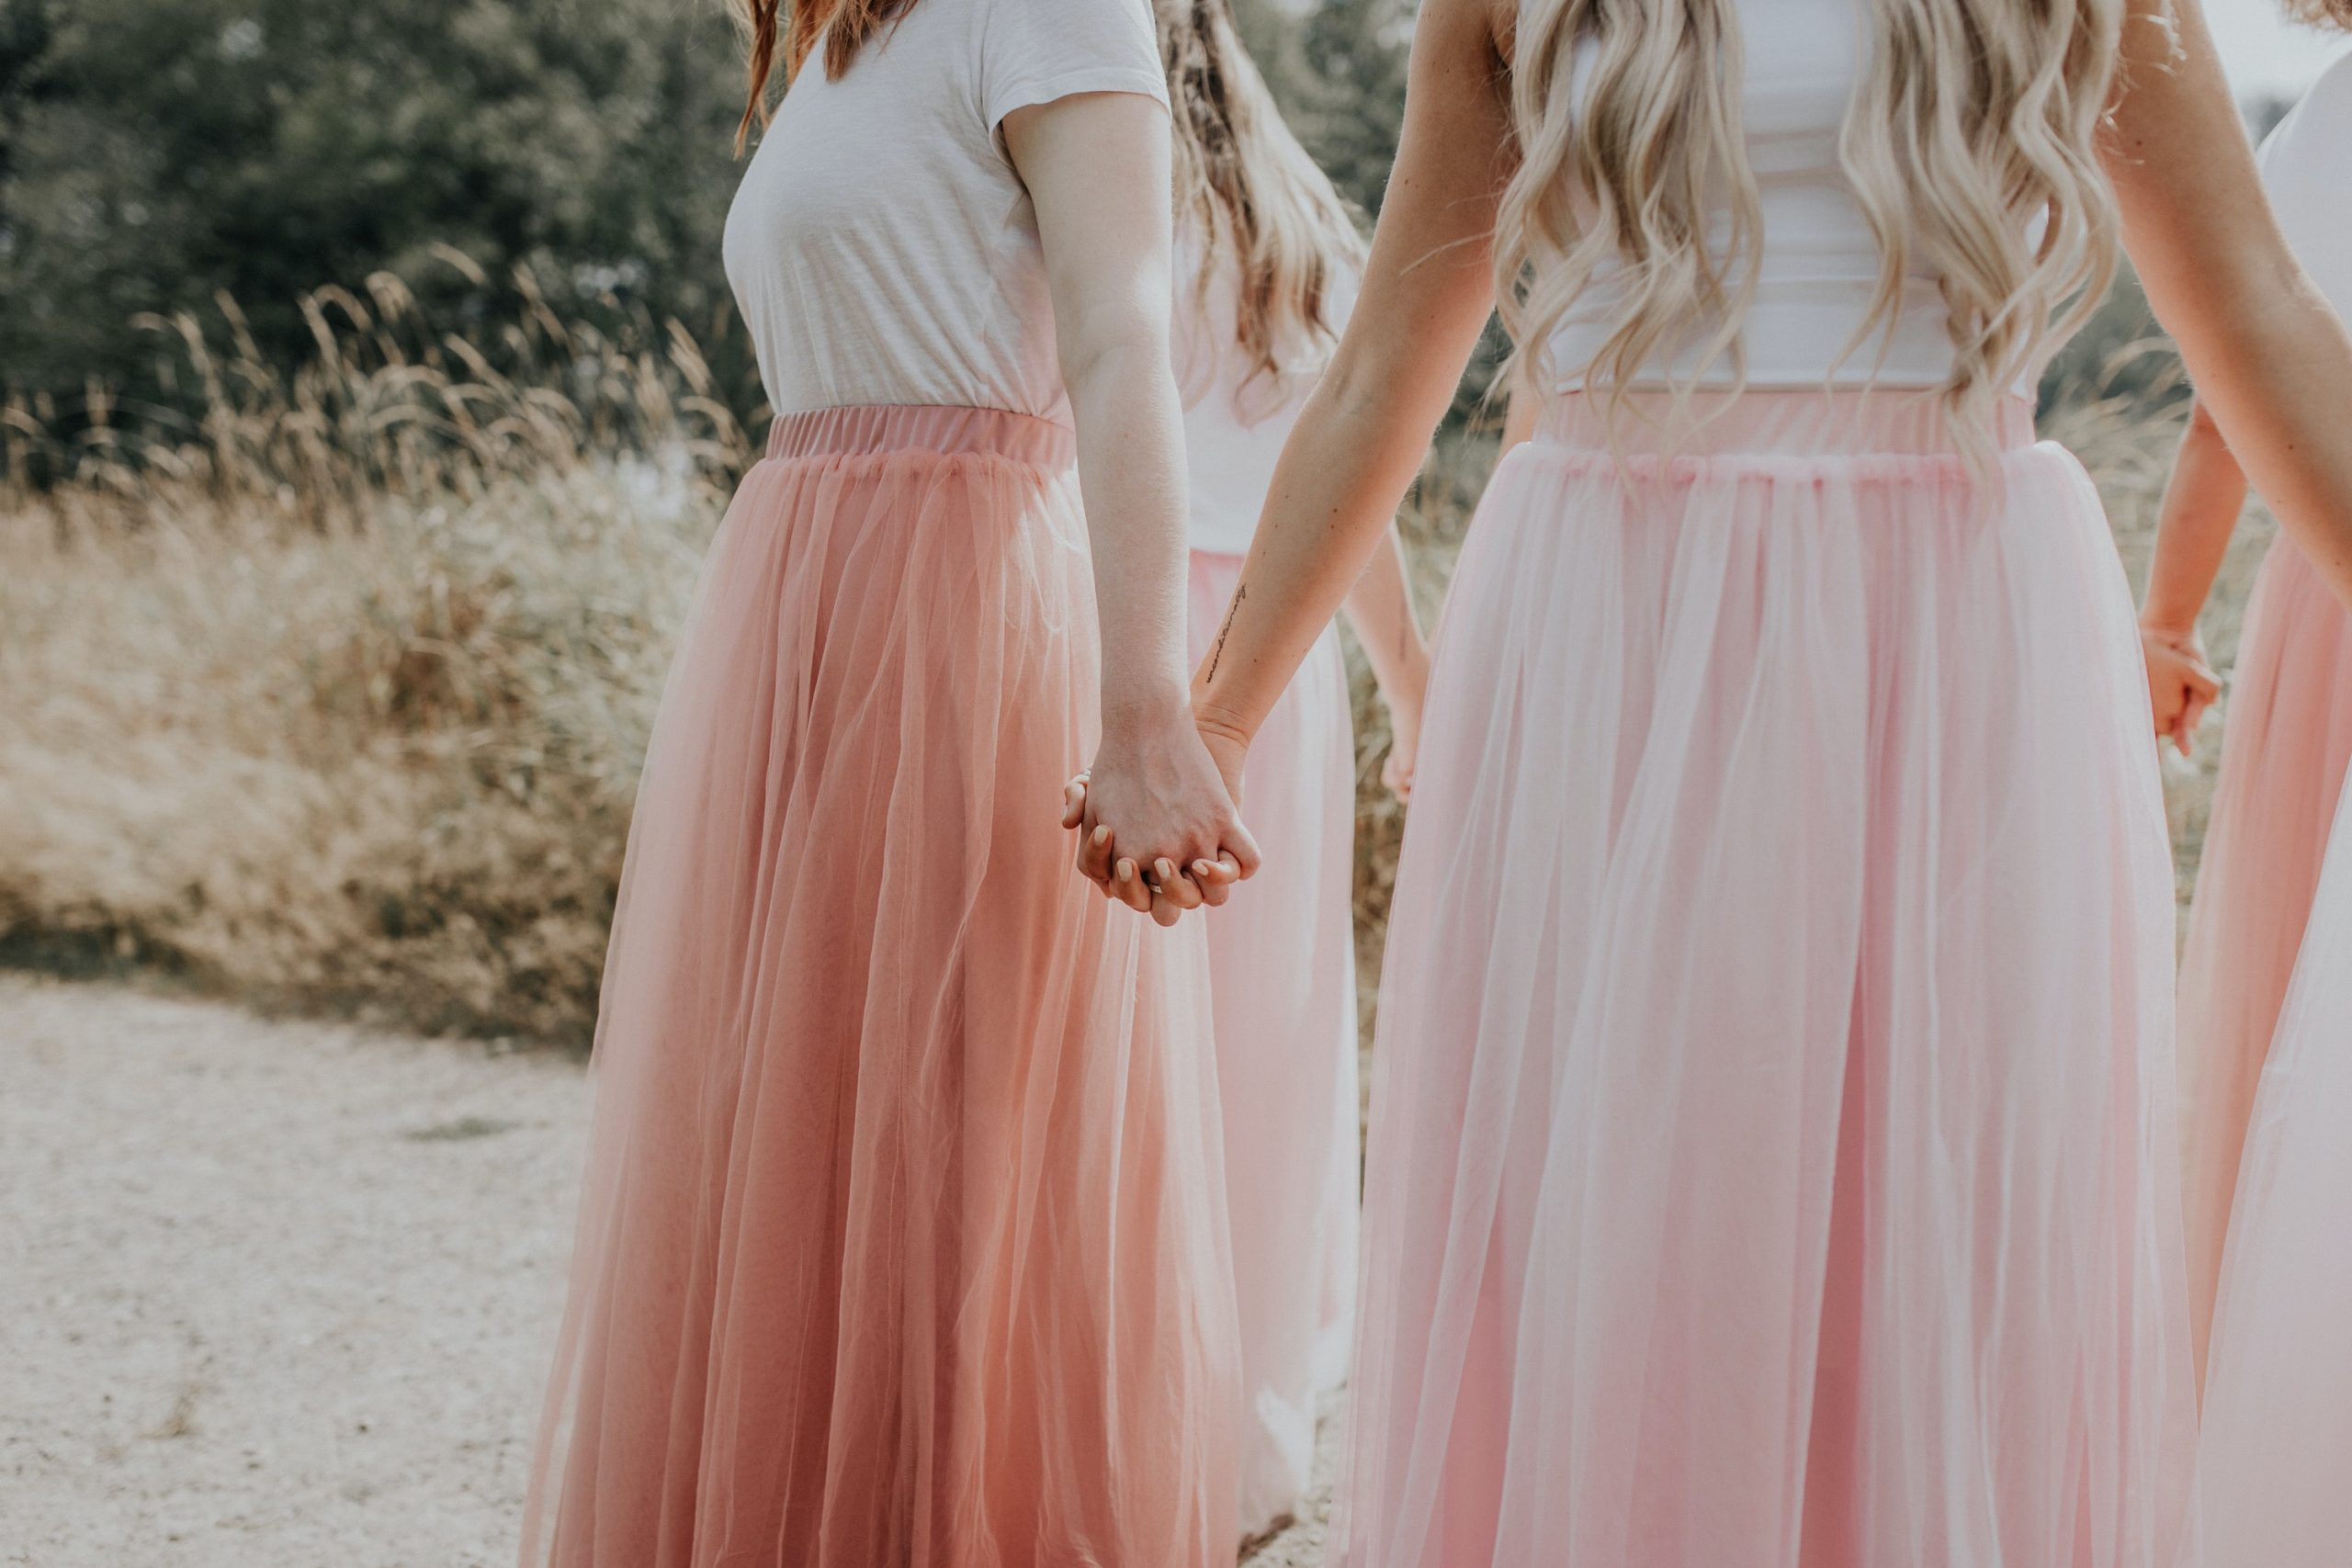 Women holding hands in pink